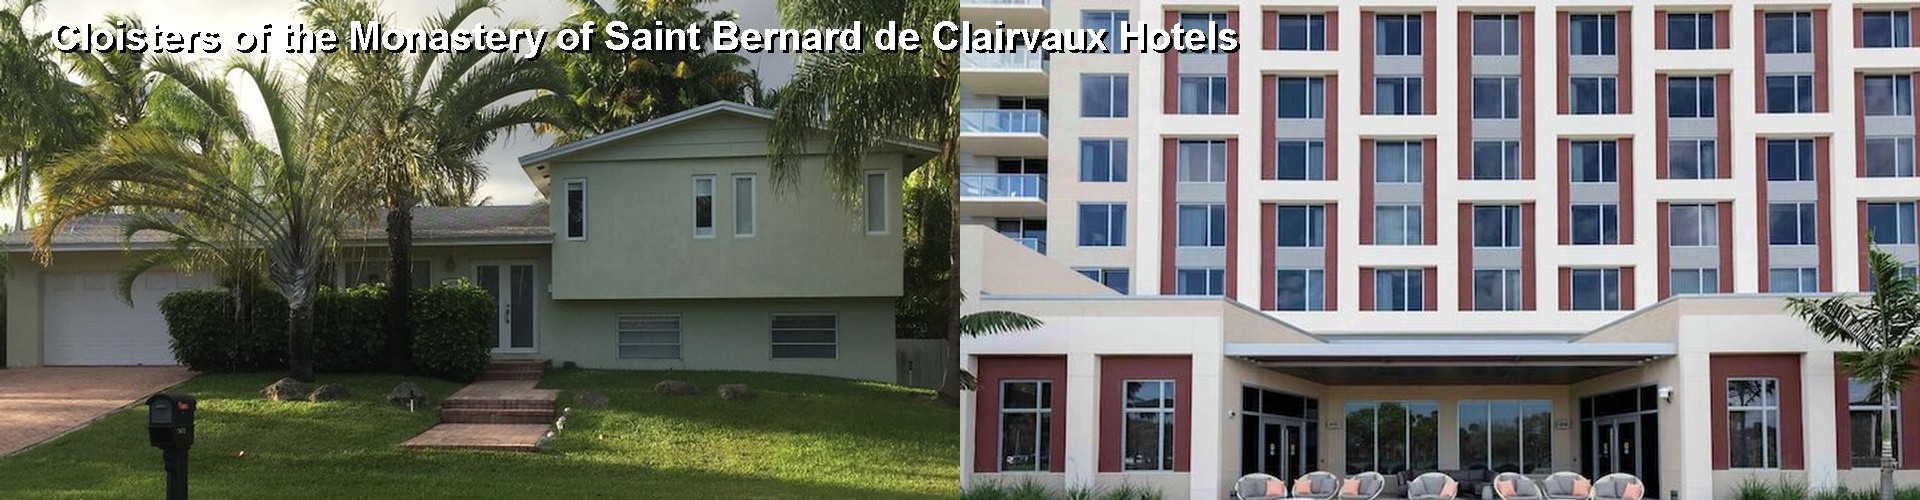 5 Best Hotels near Cloisters of the Monastery of Saint Bernard de Clairvaux